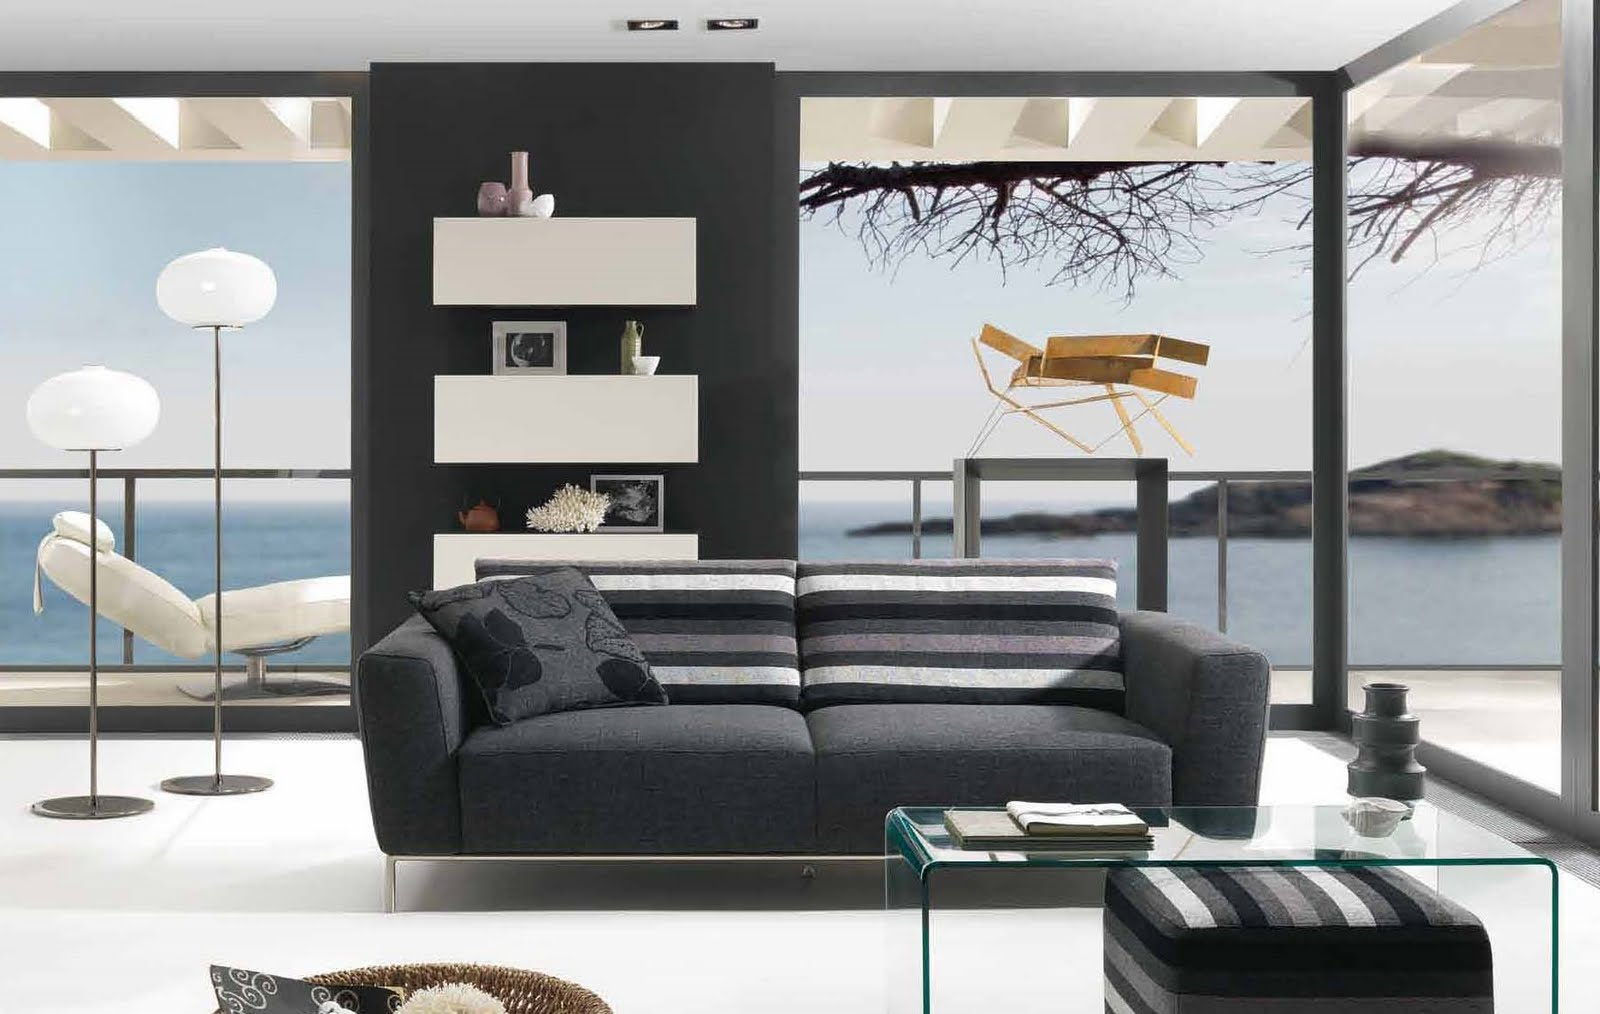 future house design modern living room interior design styles 2010 by natuzzi. Black Bedroom Furniture Sets. Home Design Ideas